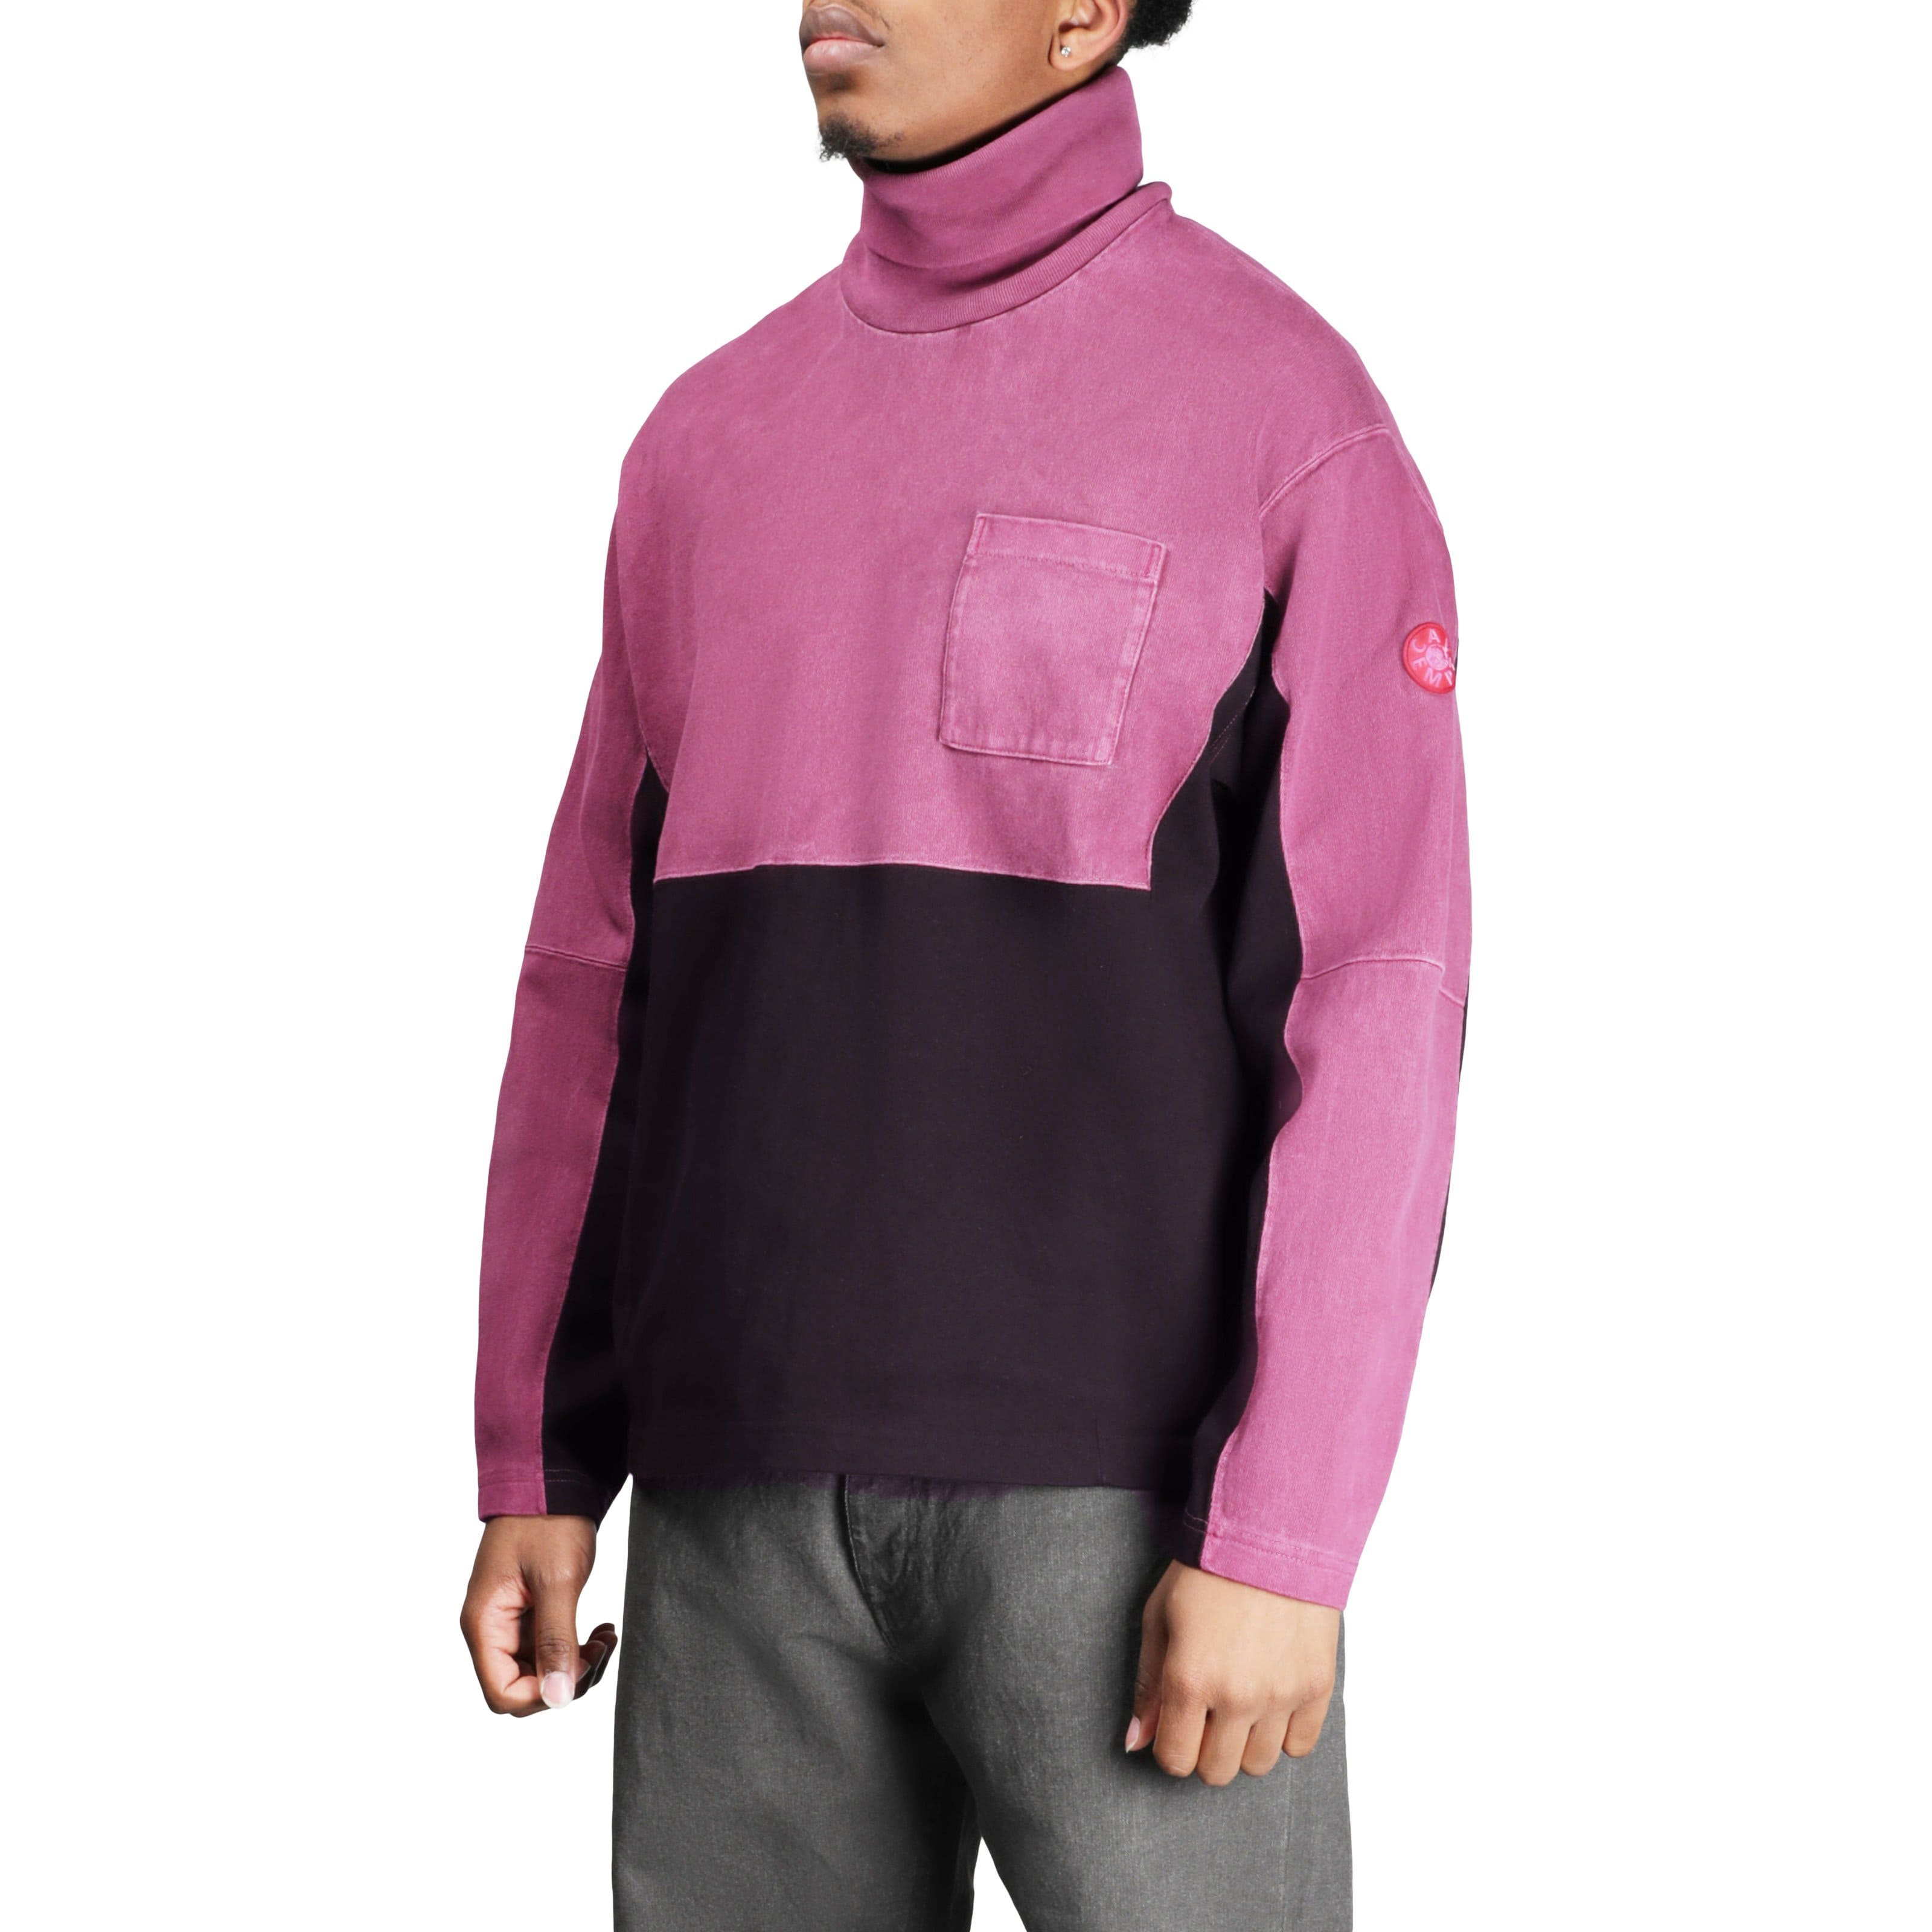 Cav Empt T-Shirts OVERDYE TURTLE NECK LONG SLEEVE T